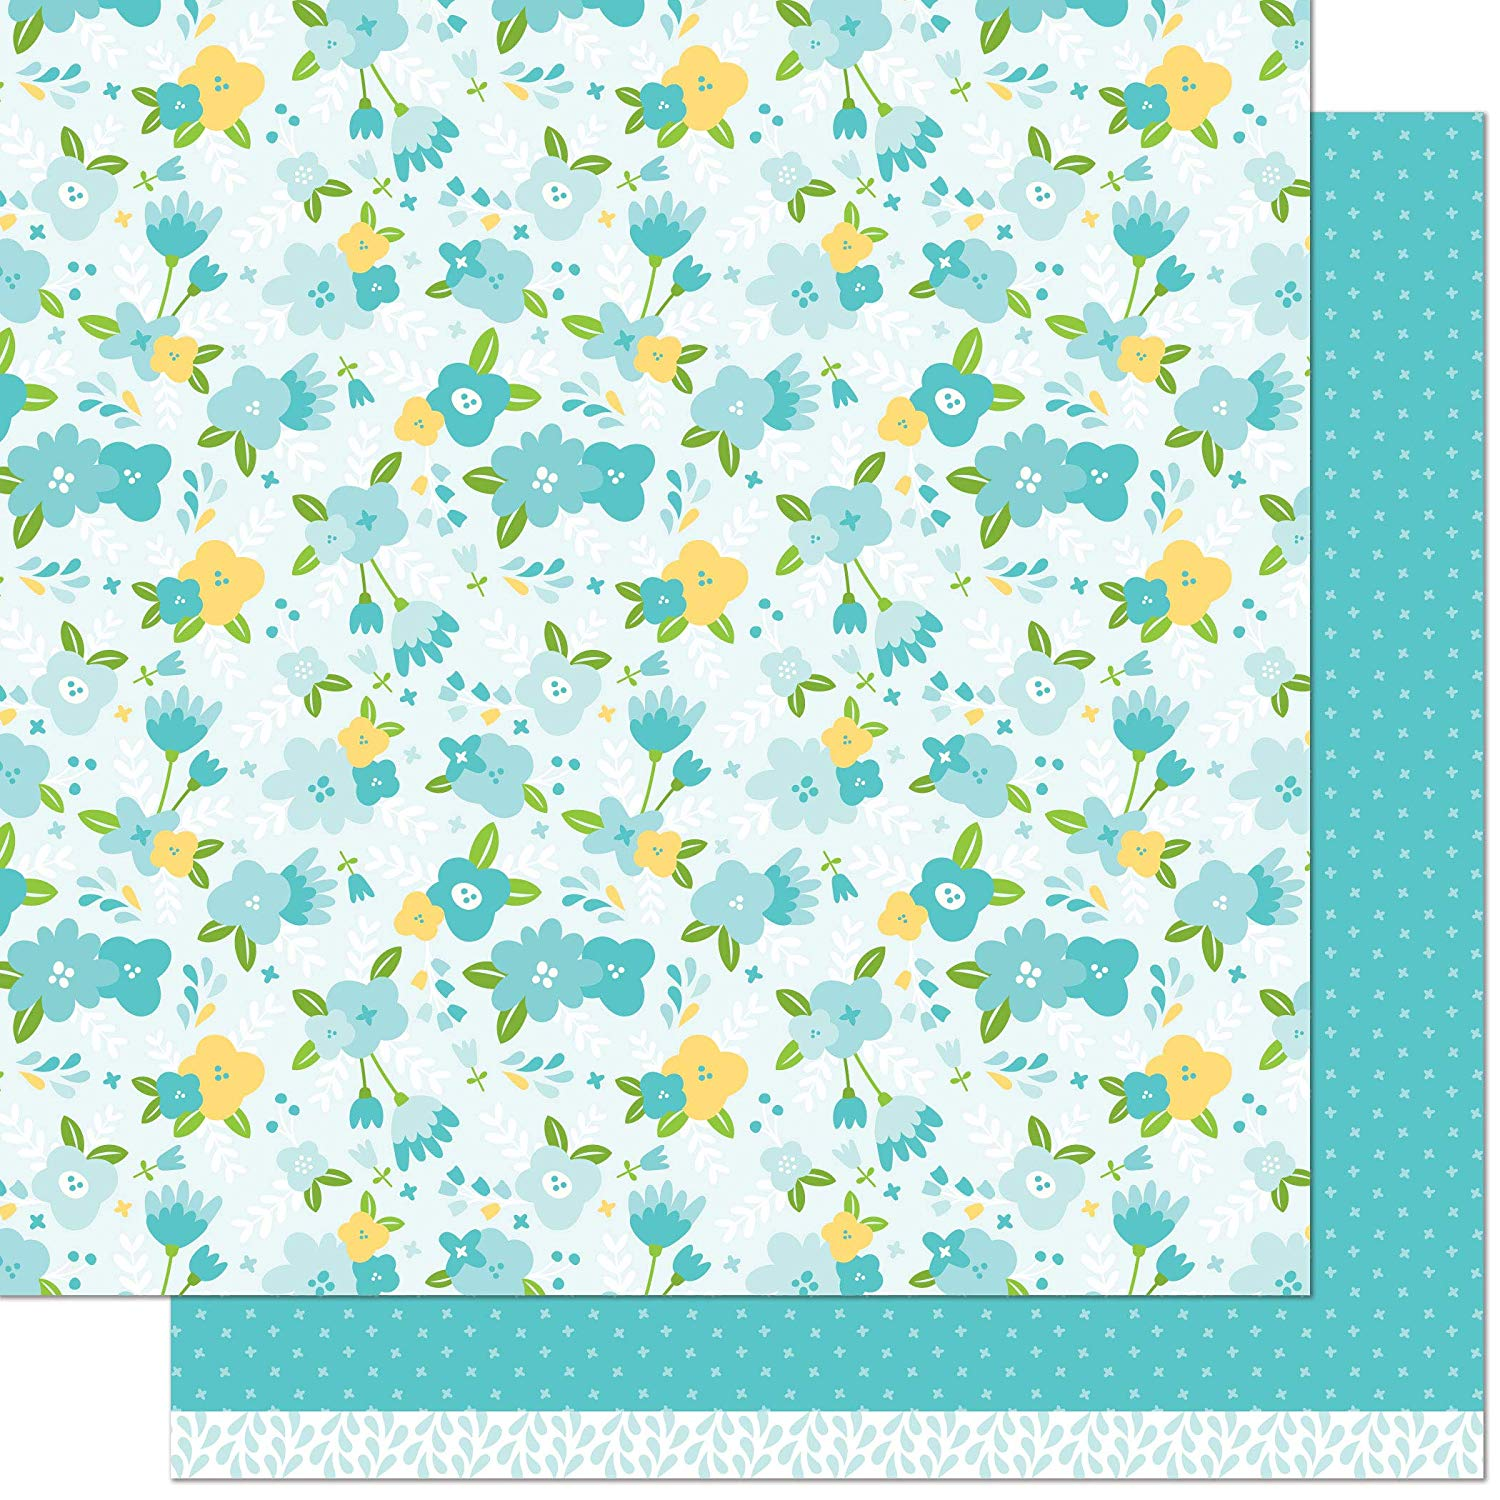 Lawn Fawn Julia 12x12 Patterned Paper (Pack of 12)